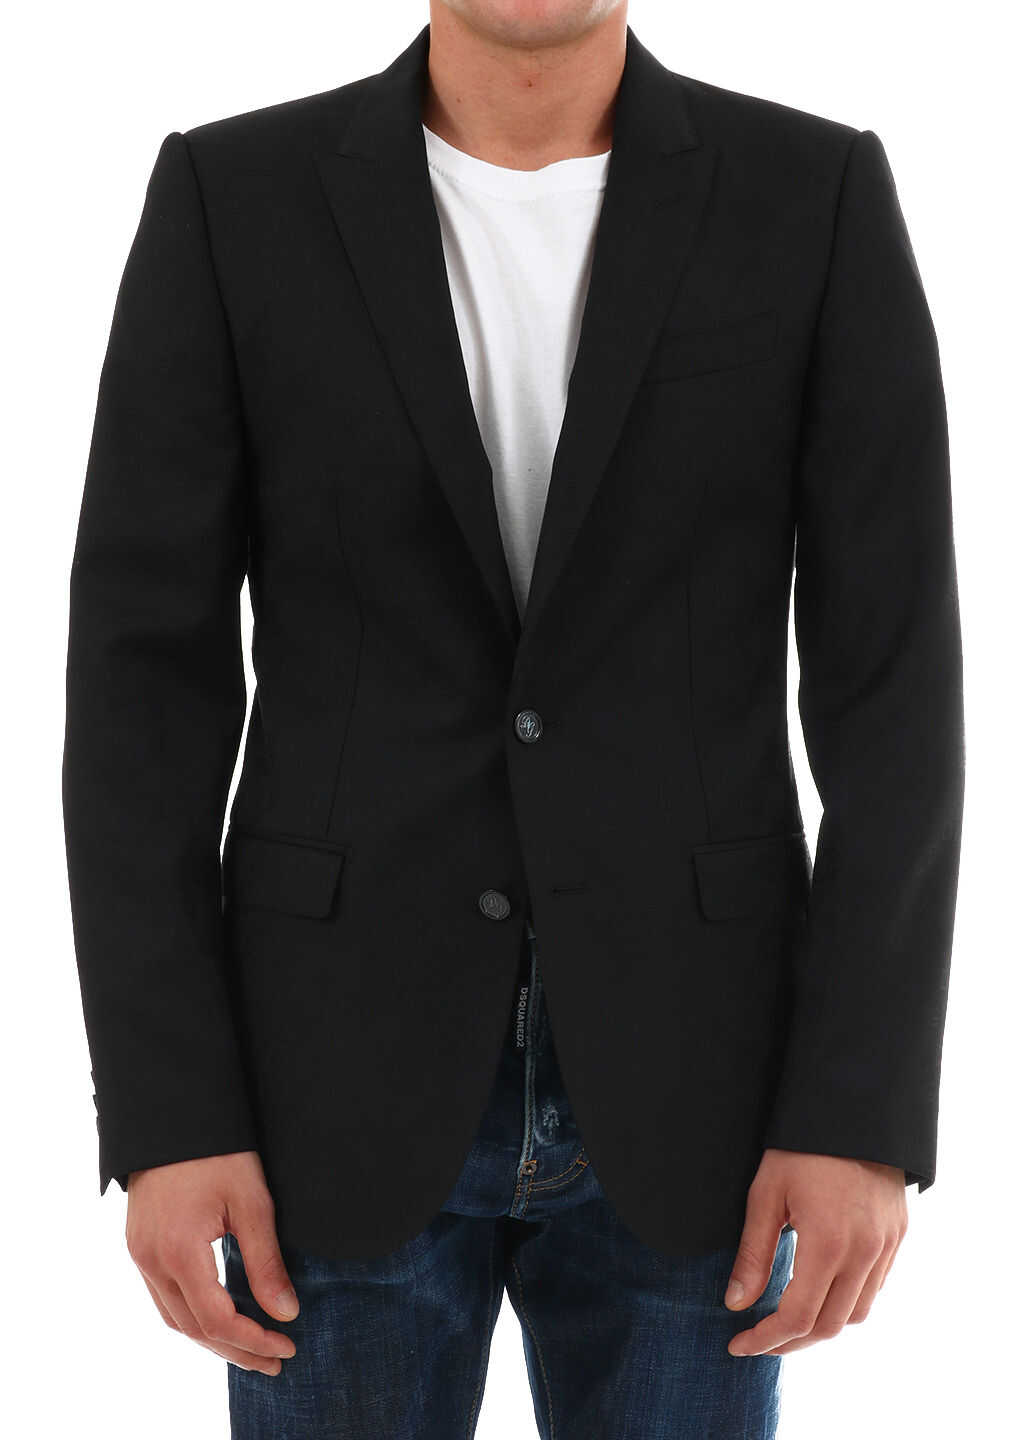 Dolce & Gabbana Wool Jacket Black imagine